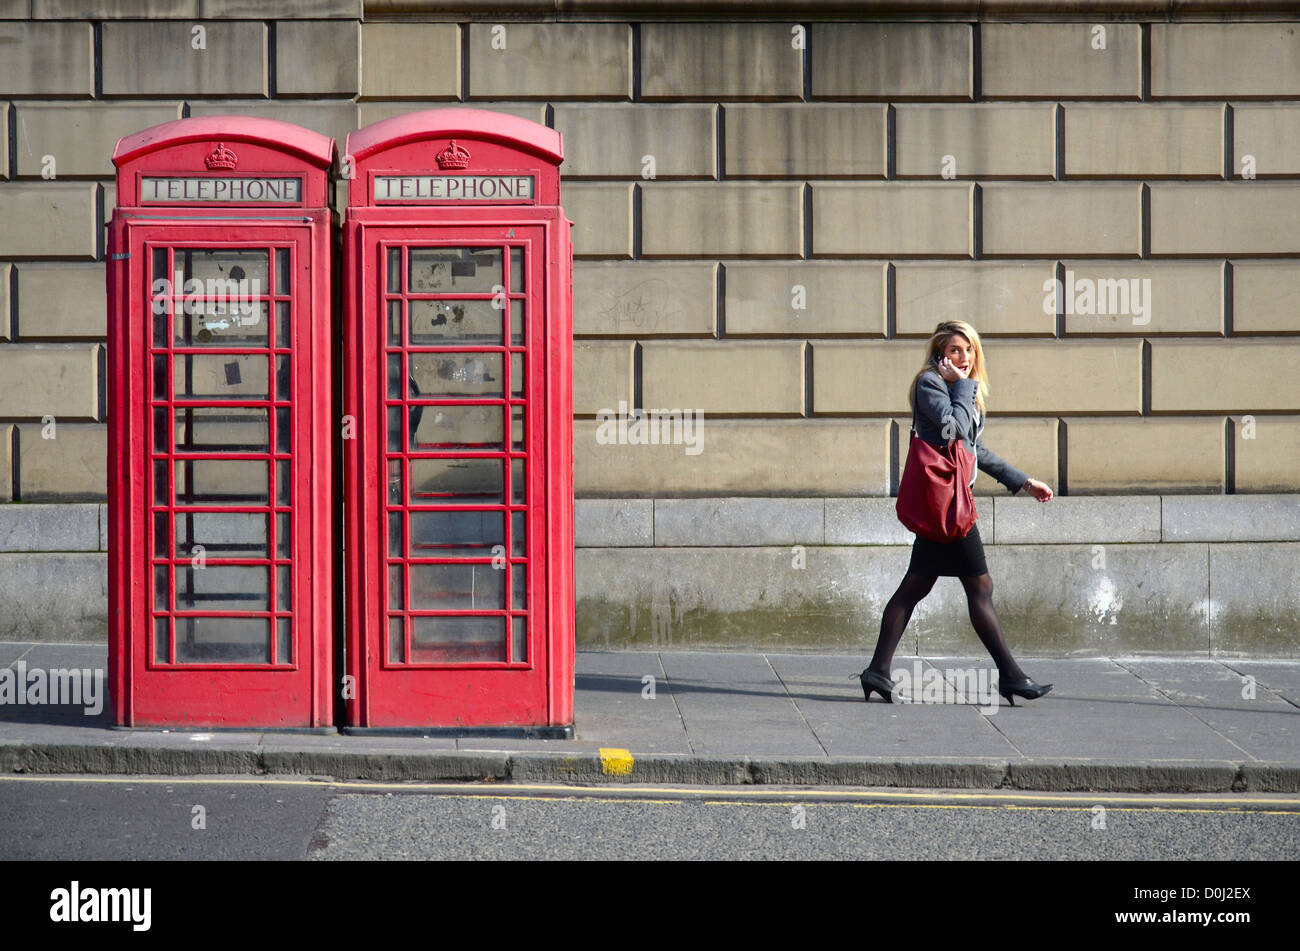 A young woman on a mobile phone strolls by a classic red telephone box on George IV Bridge in Edinburgh. - Stock Image